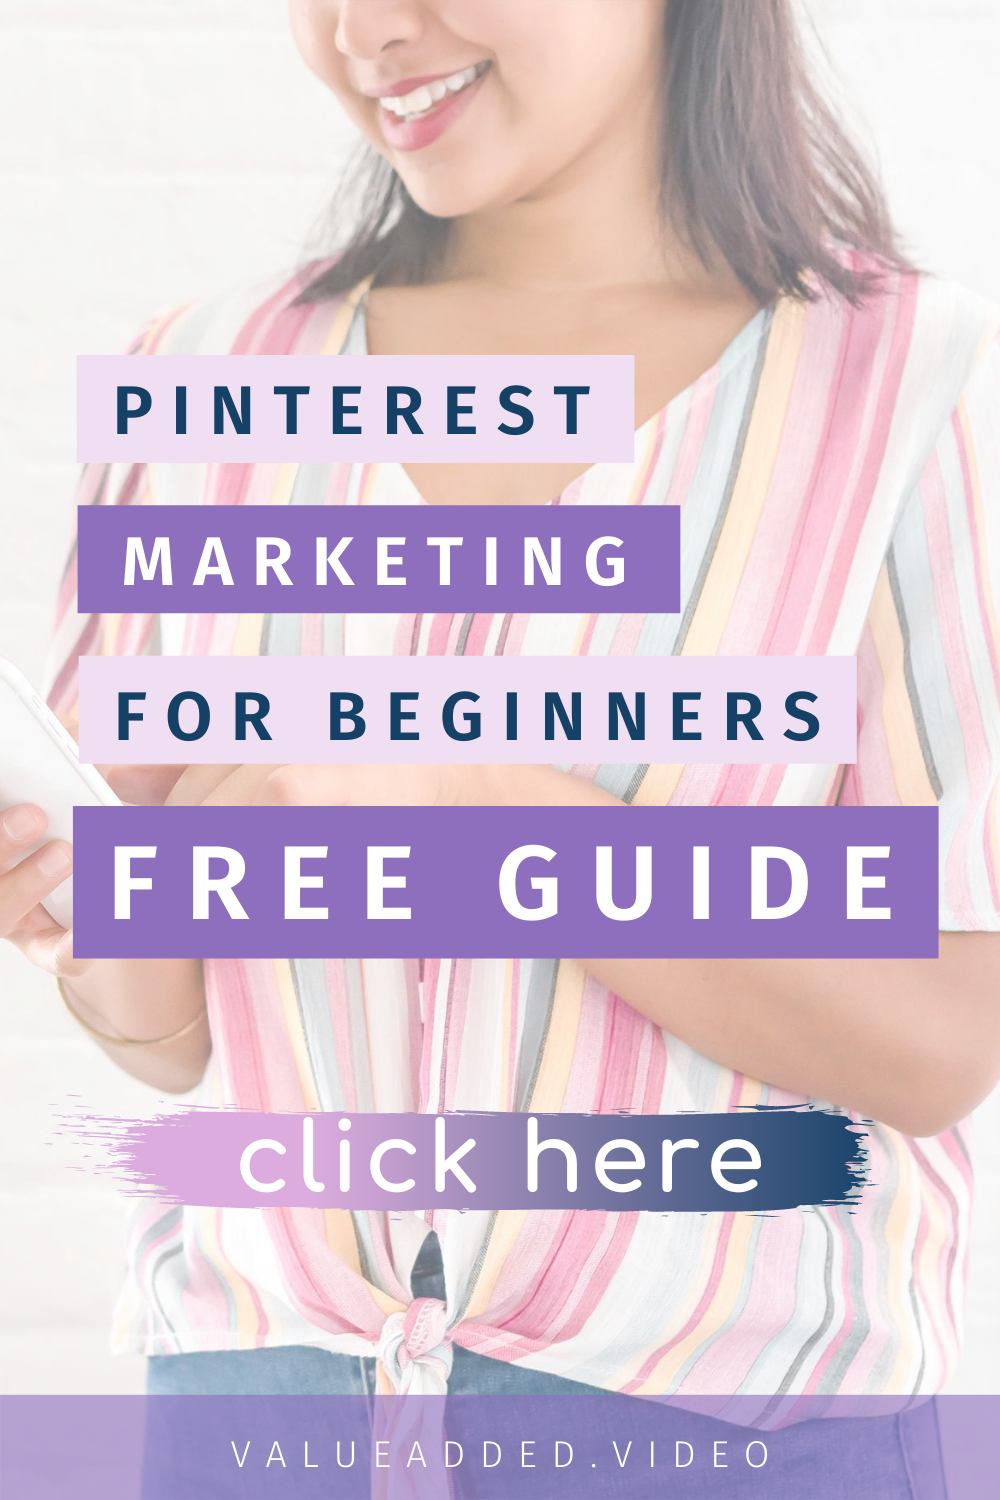 free guide pinterest marketing for beginners